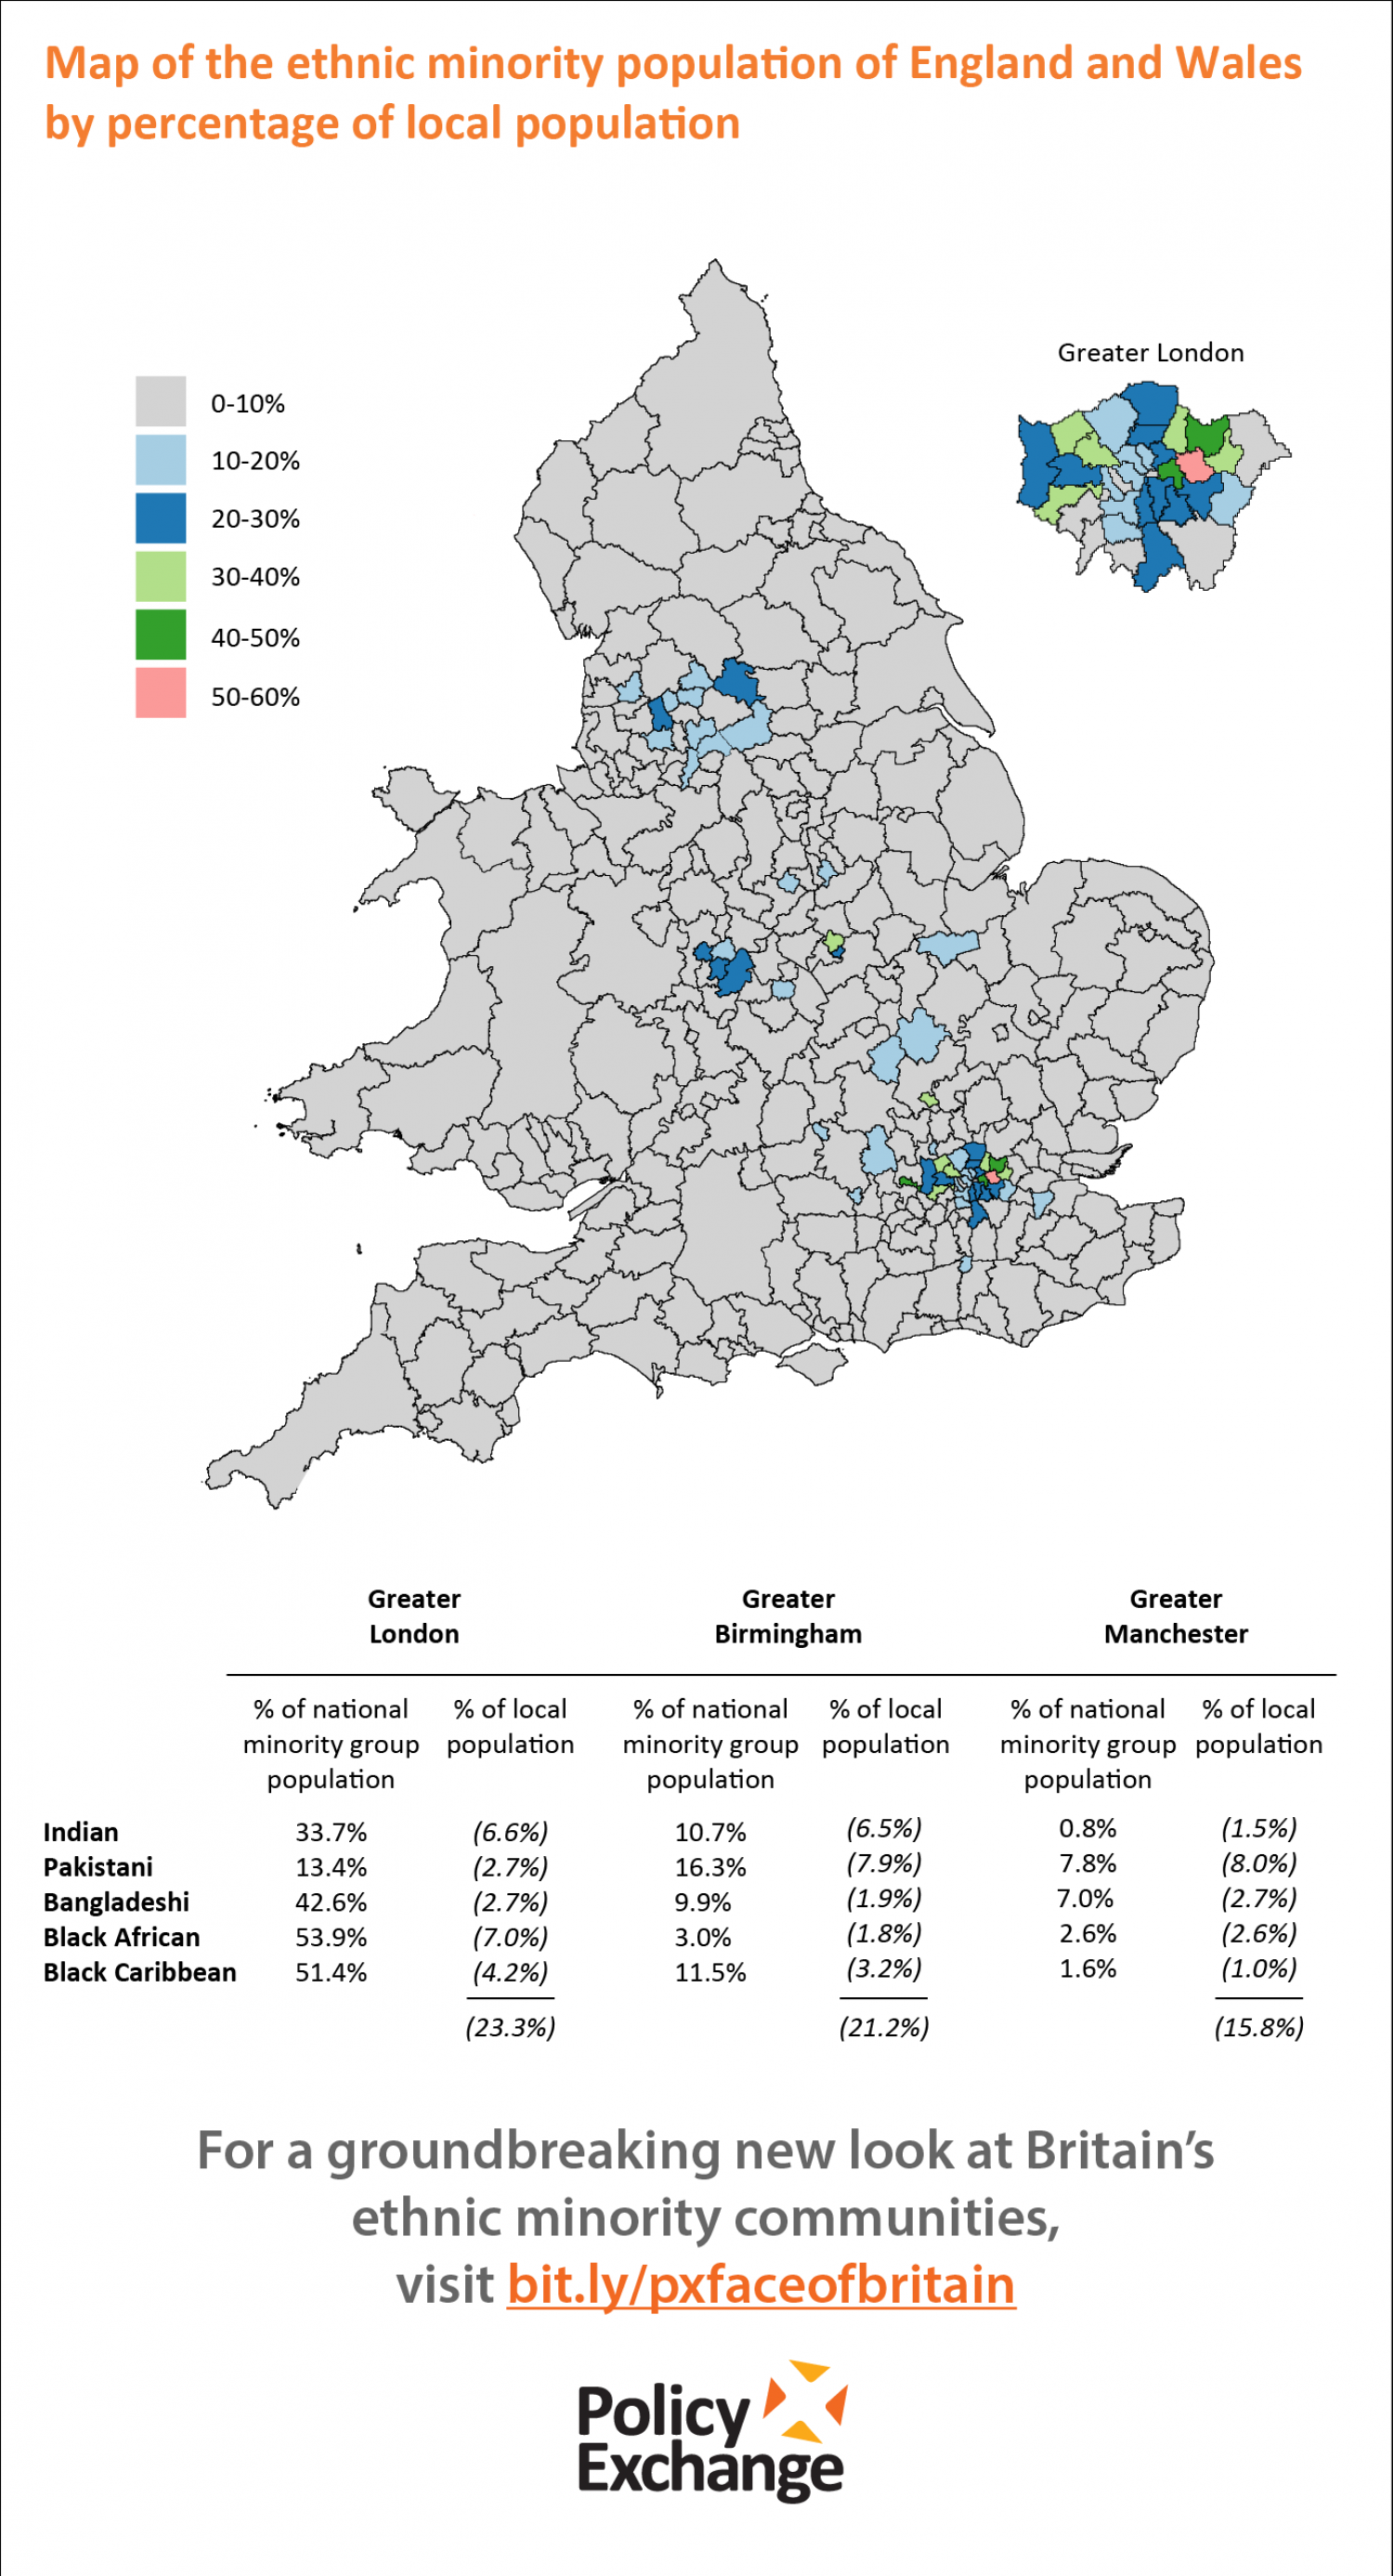 Map of the Ethnic Minority Population of England and Wales by Percentage of Local Population Infographic